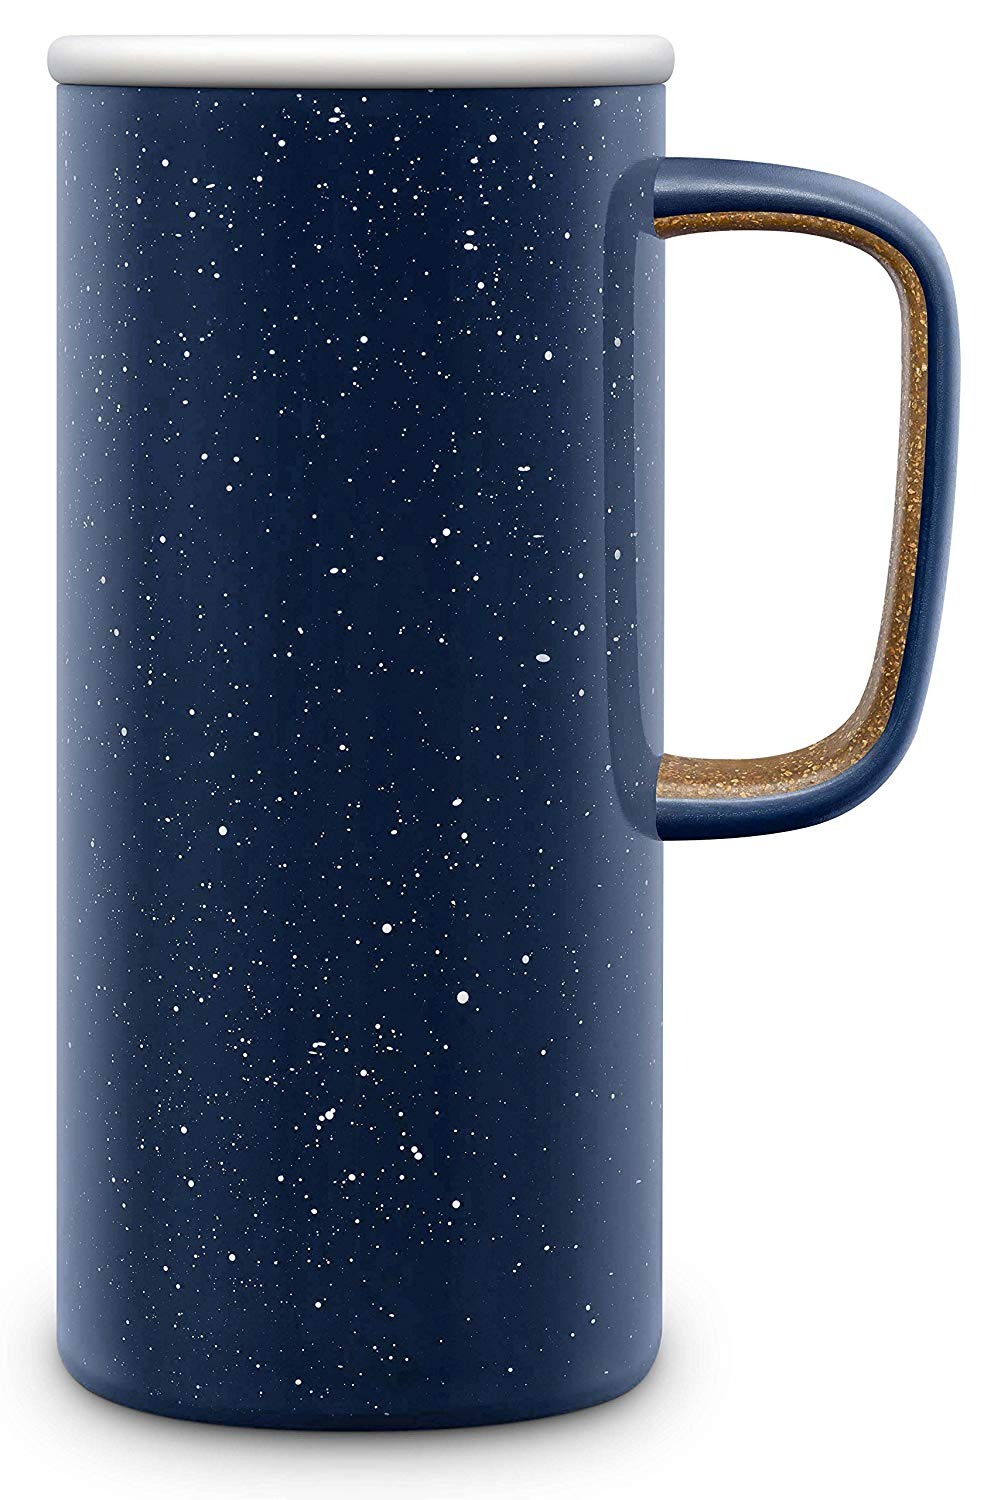 Ello travel mug